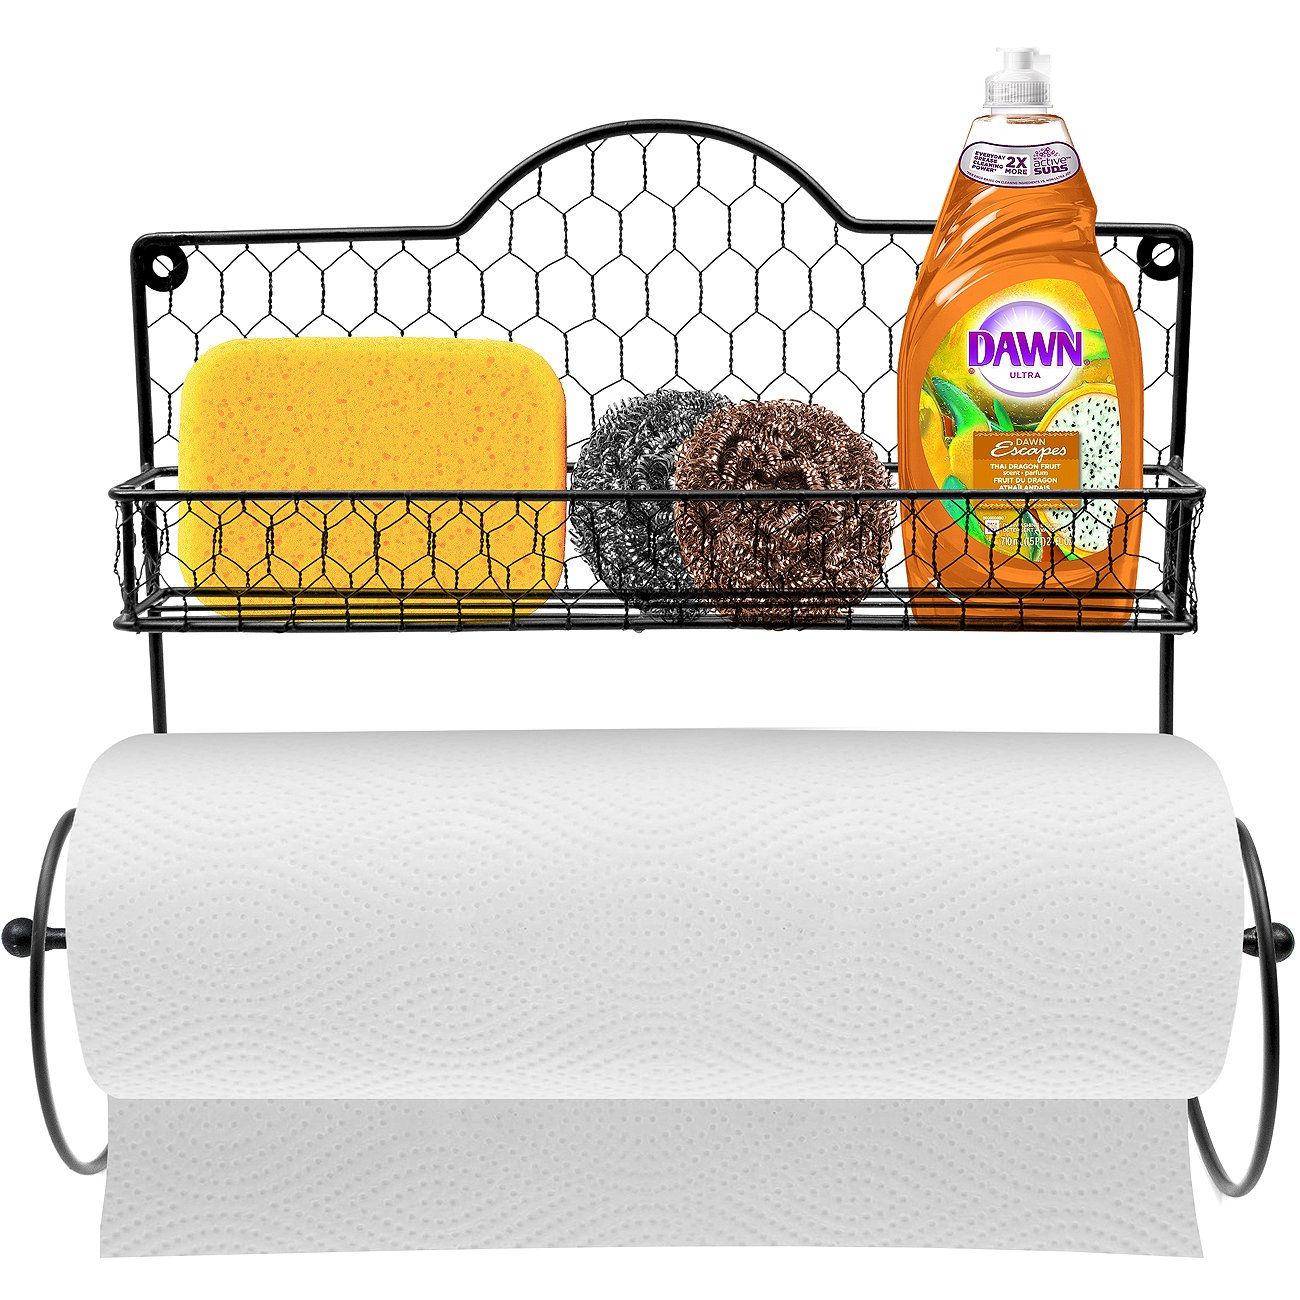 Sorbus Paper Towel Holder, Spice Rack and Multi-Purpose Shelf—Wall Mounted Storage for Kitchen Accessories, Towels, Toiletries, Supplies, etc.—Ideal for Kitchen/Bathroom—Made of Steel (Black) by Sorbus (Image #1)